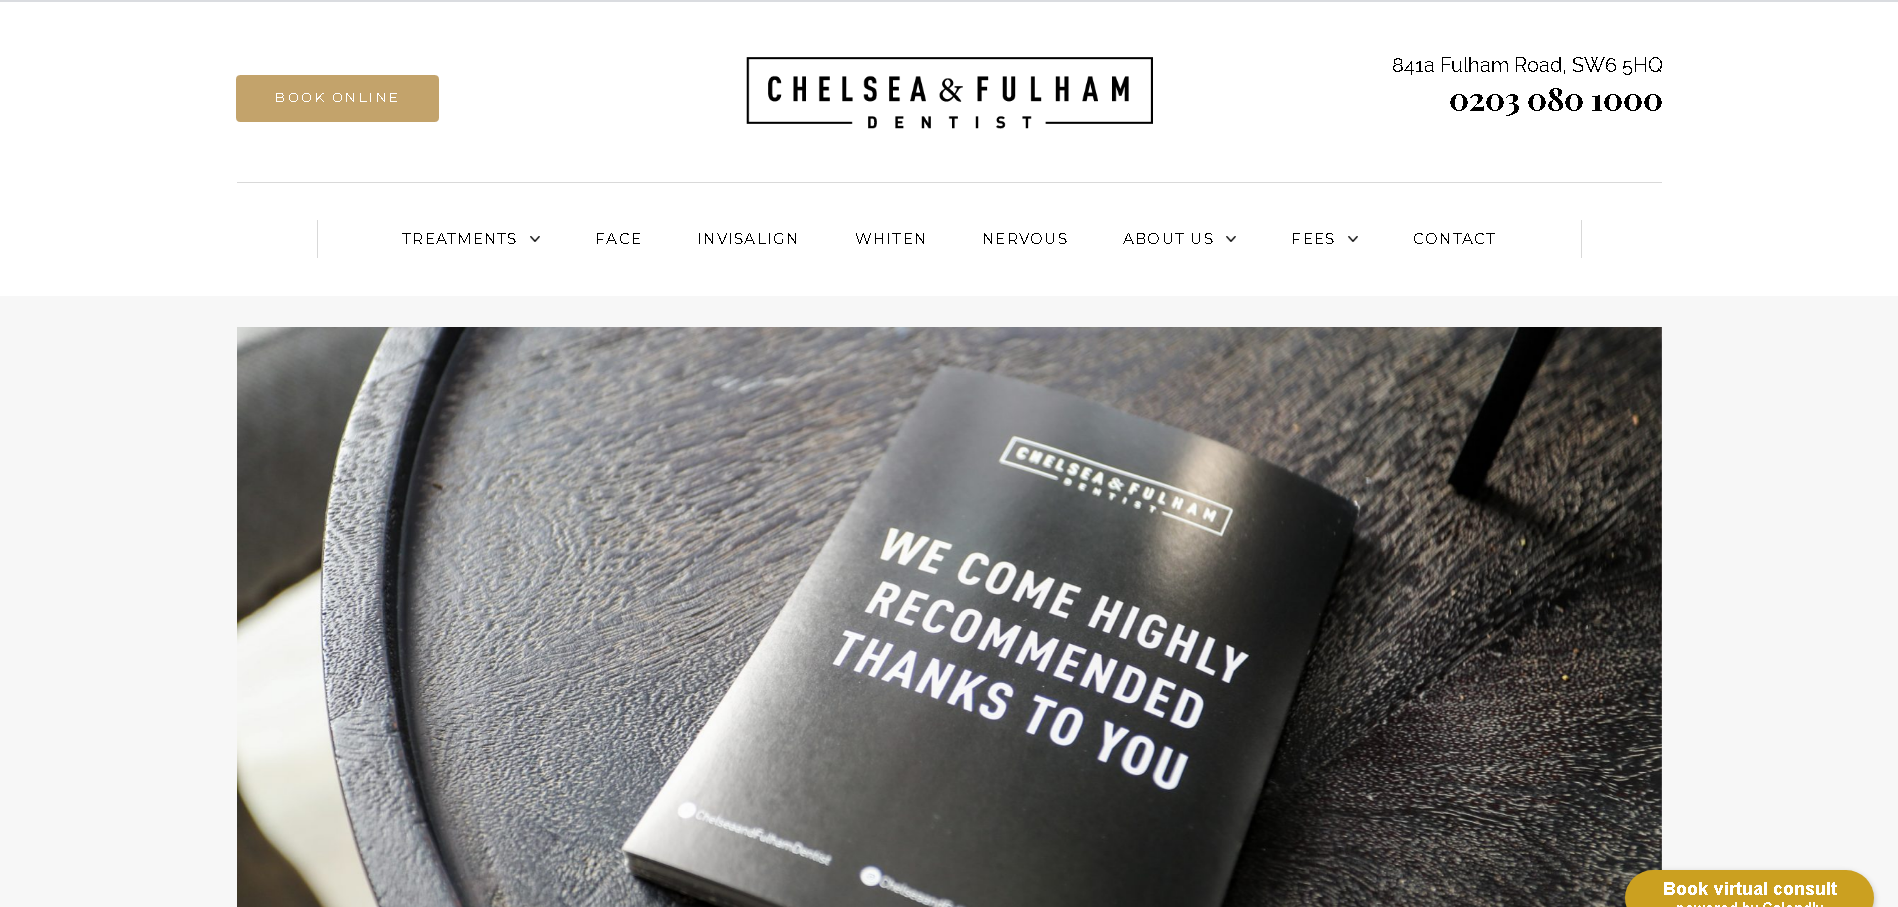 Chelsea and Fulham Dentist